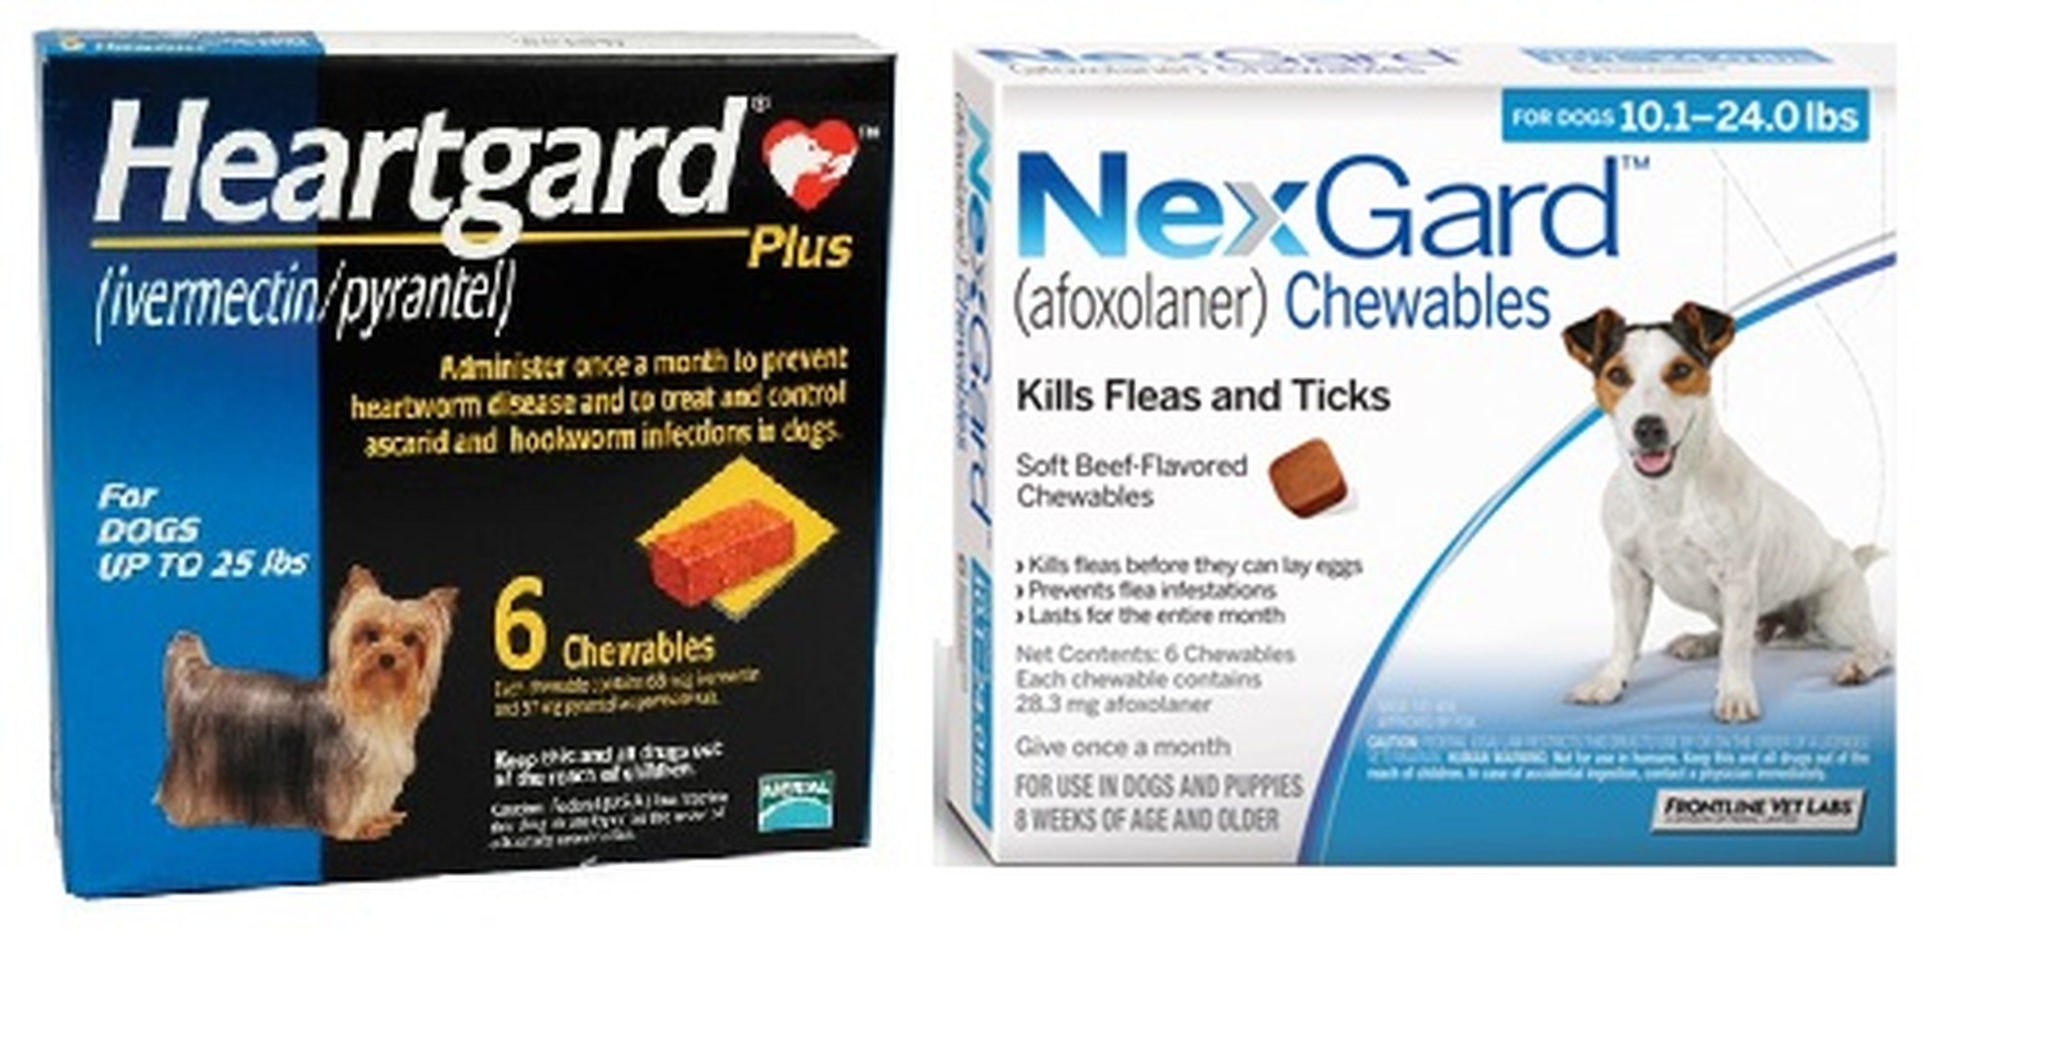 Nexgard And Heartgard Combo For Dogs 10 1 24 Lbs Up To 10 Kg 6 Month Bundle Sierra Pet Meds